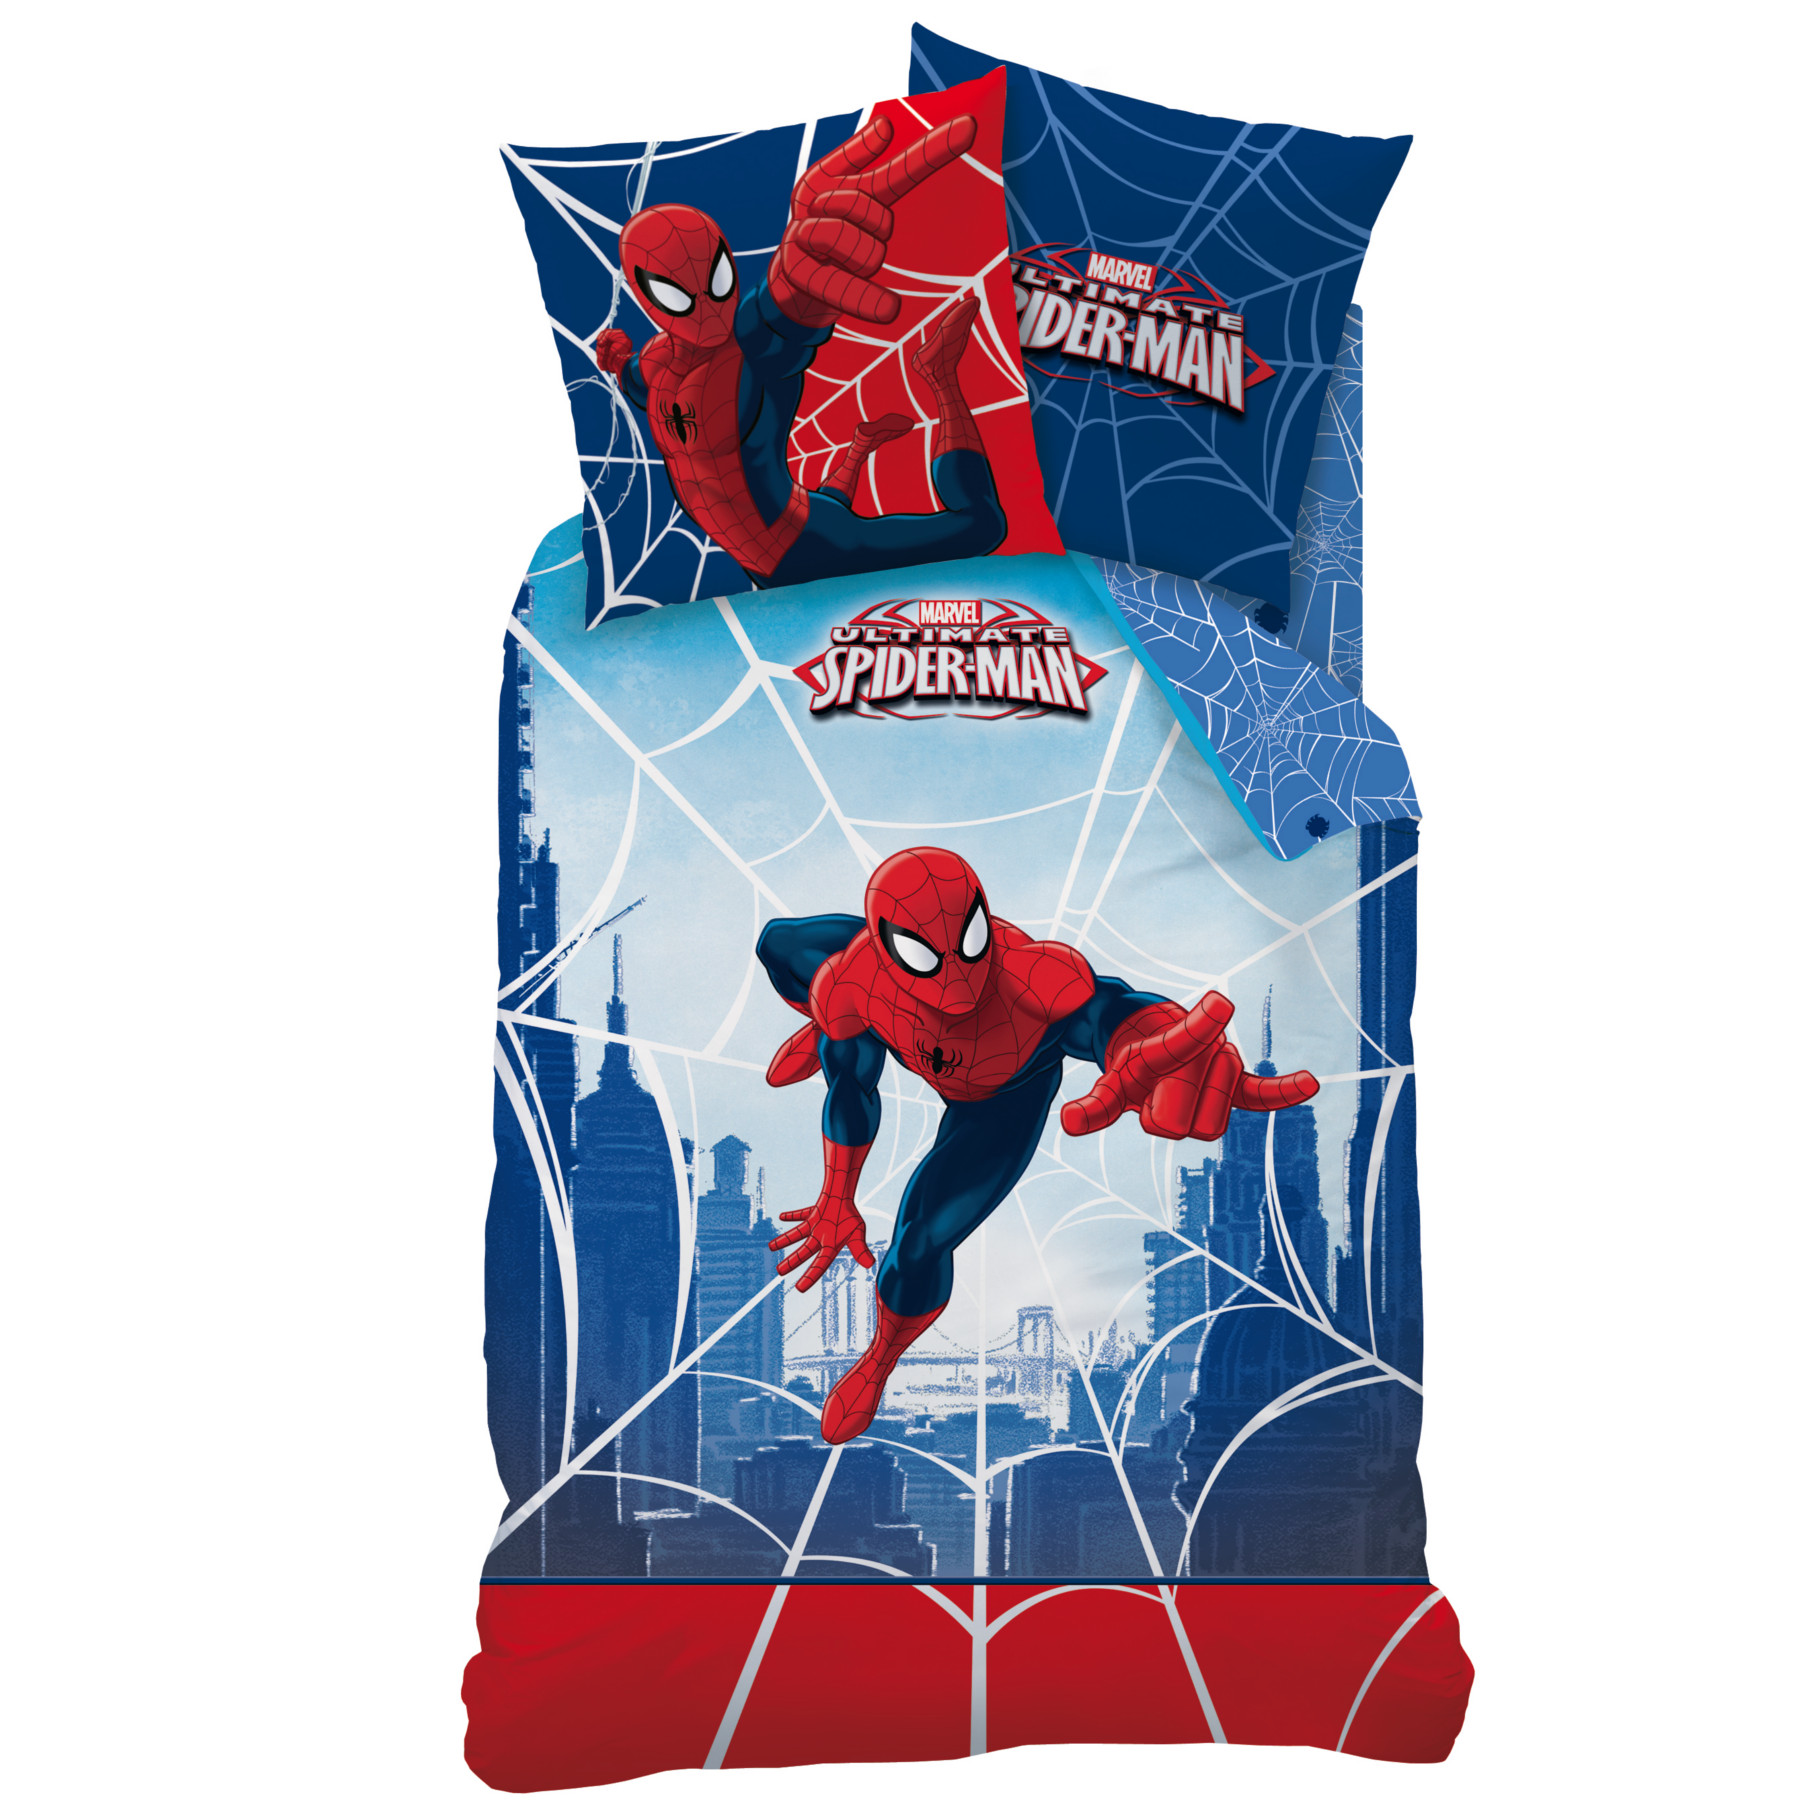 Parure lit spiderman for Housse de couette spiderman 200x200